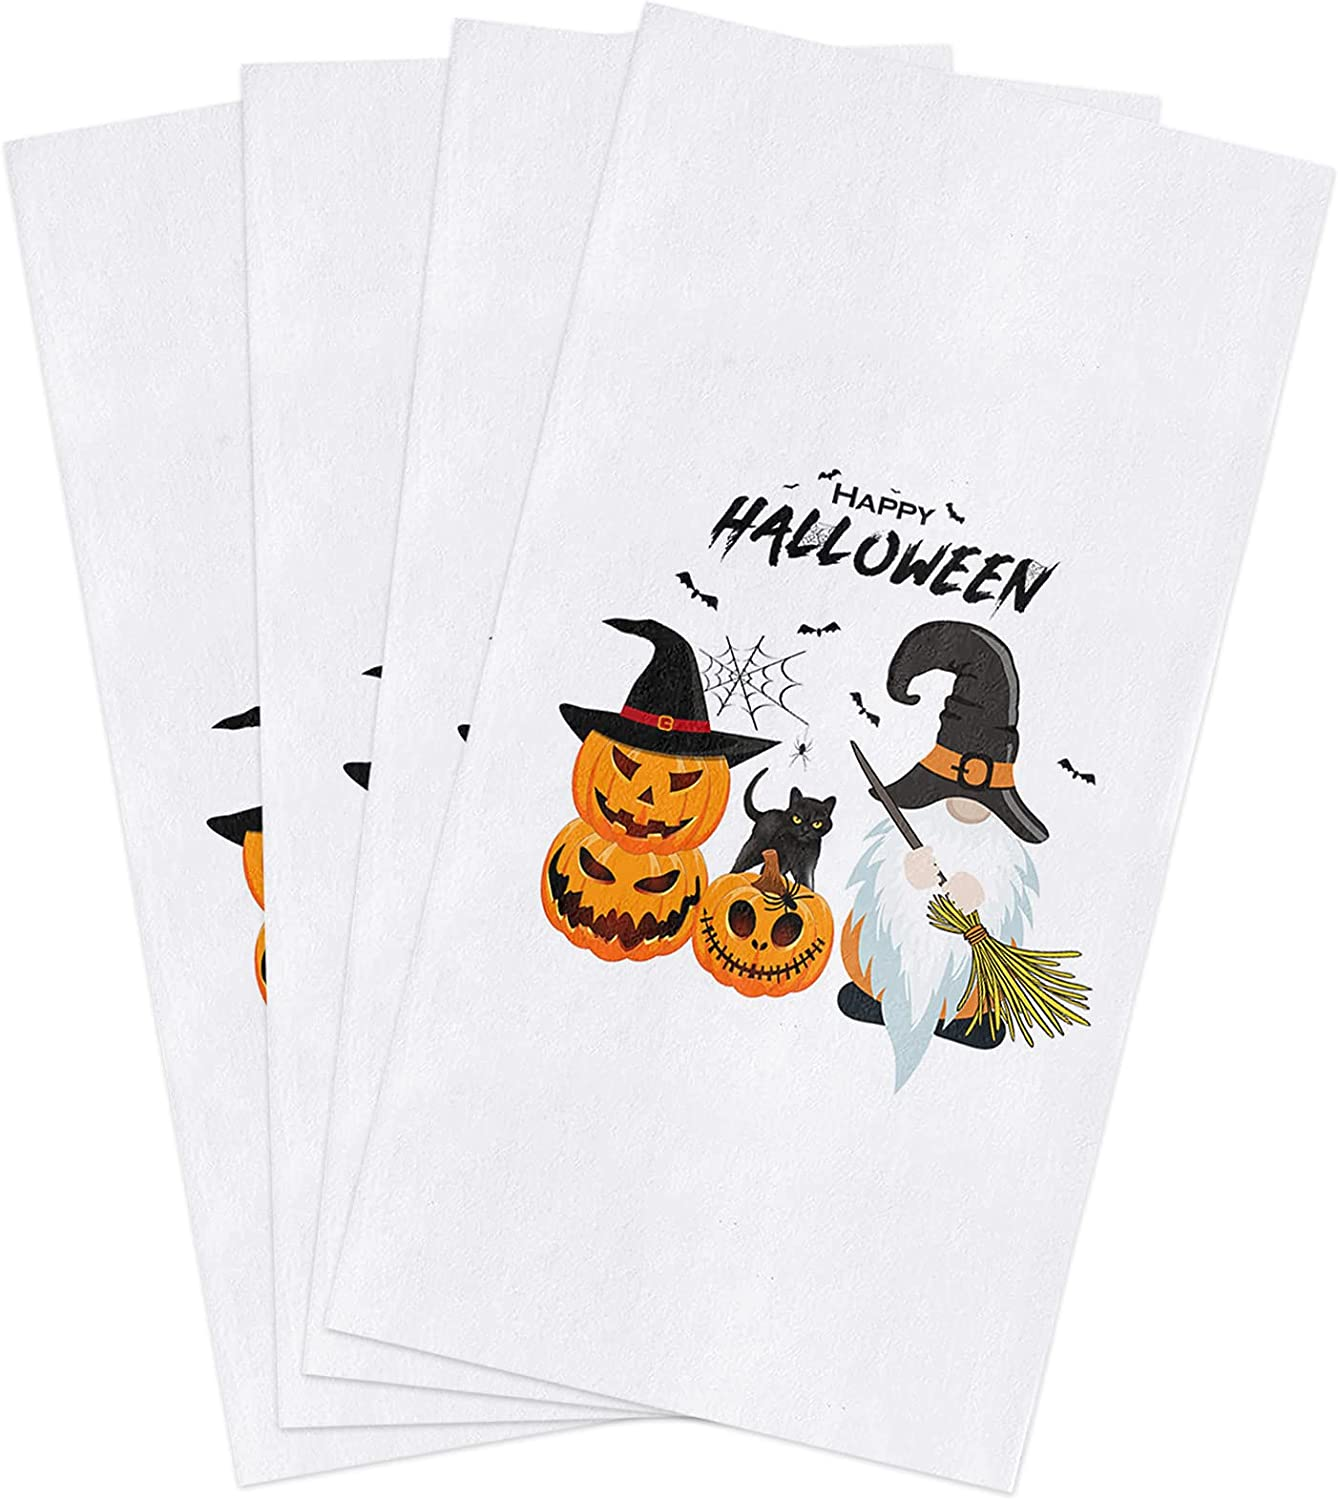 BoNuer Halloween Kitchen Towel Set of Pumpkin Max 79% OFF Bats Spring new work one after another 4 Dish